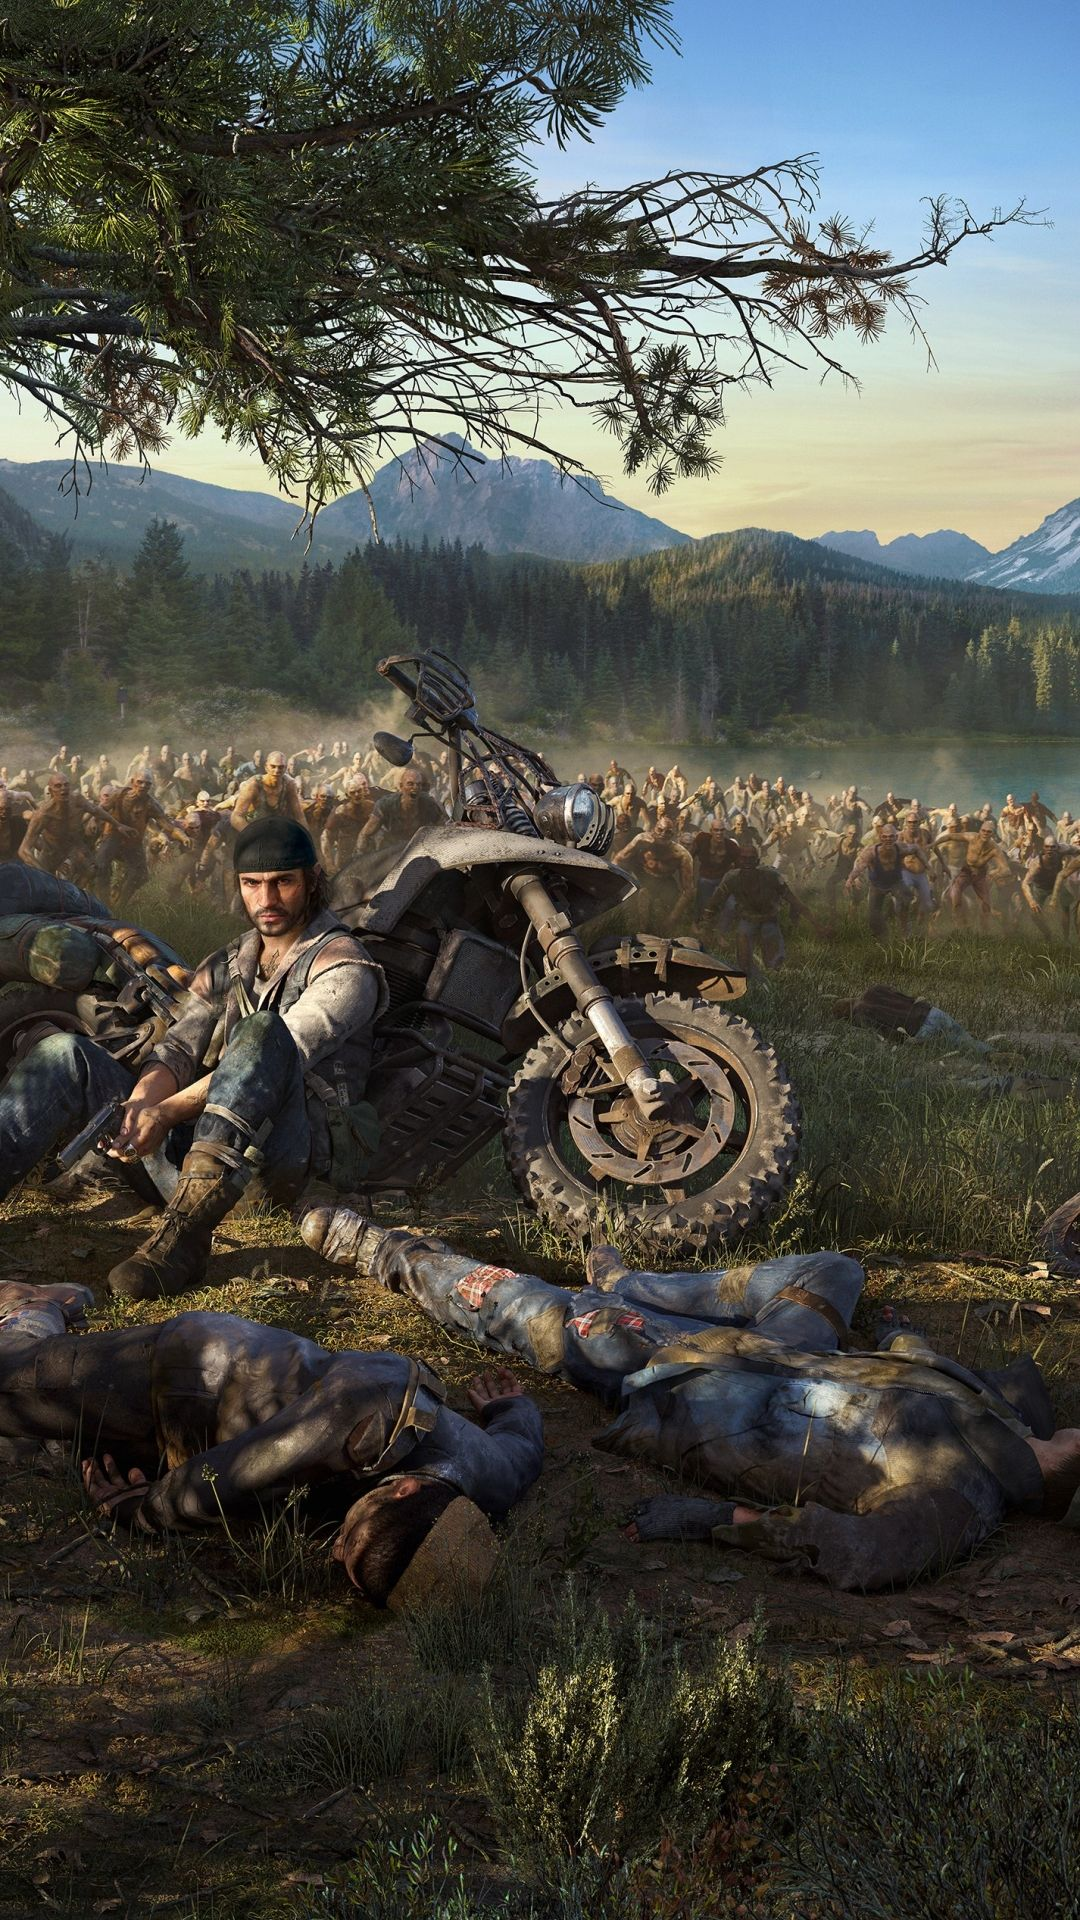 Video Game Days Gone 1080x1920 Mobile Wallpaper Jogos ps4 1080x1920